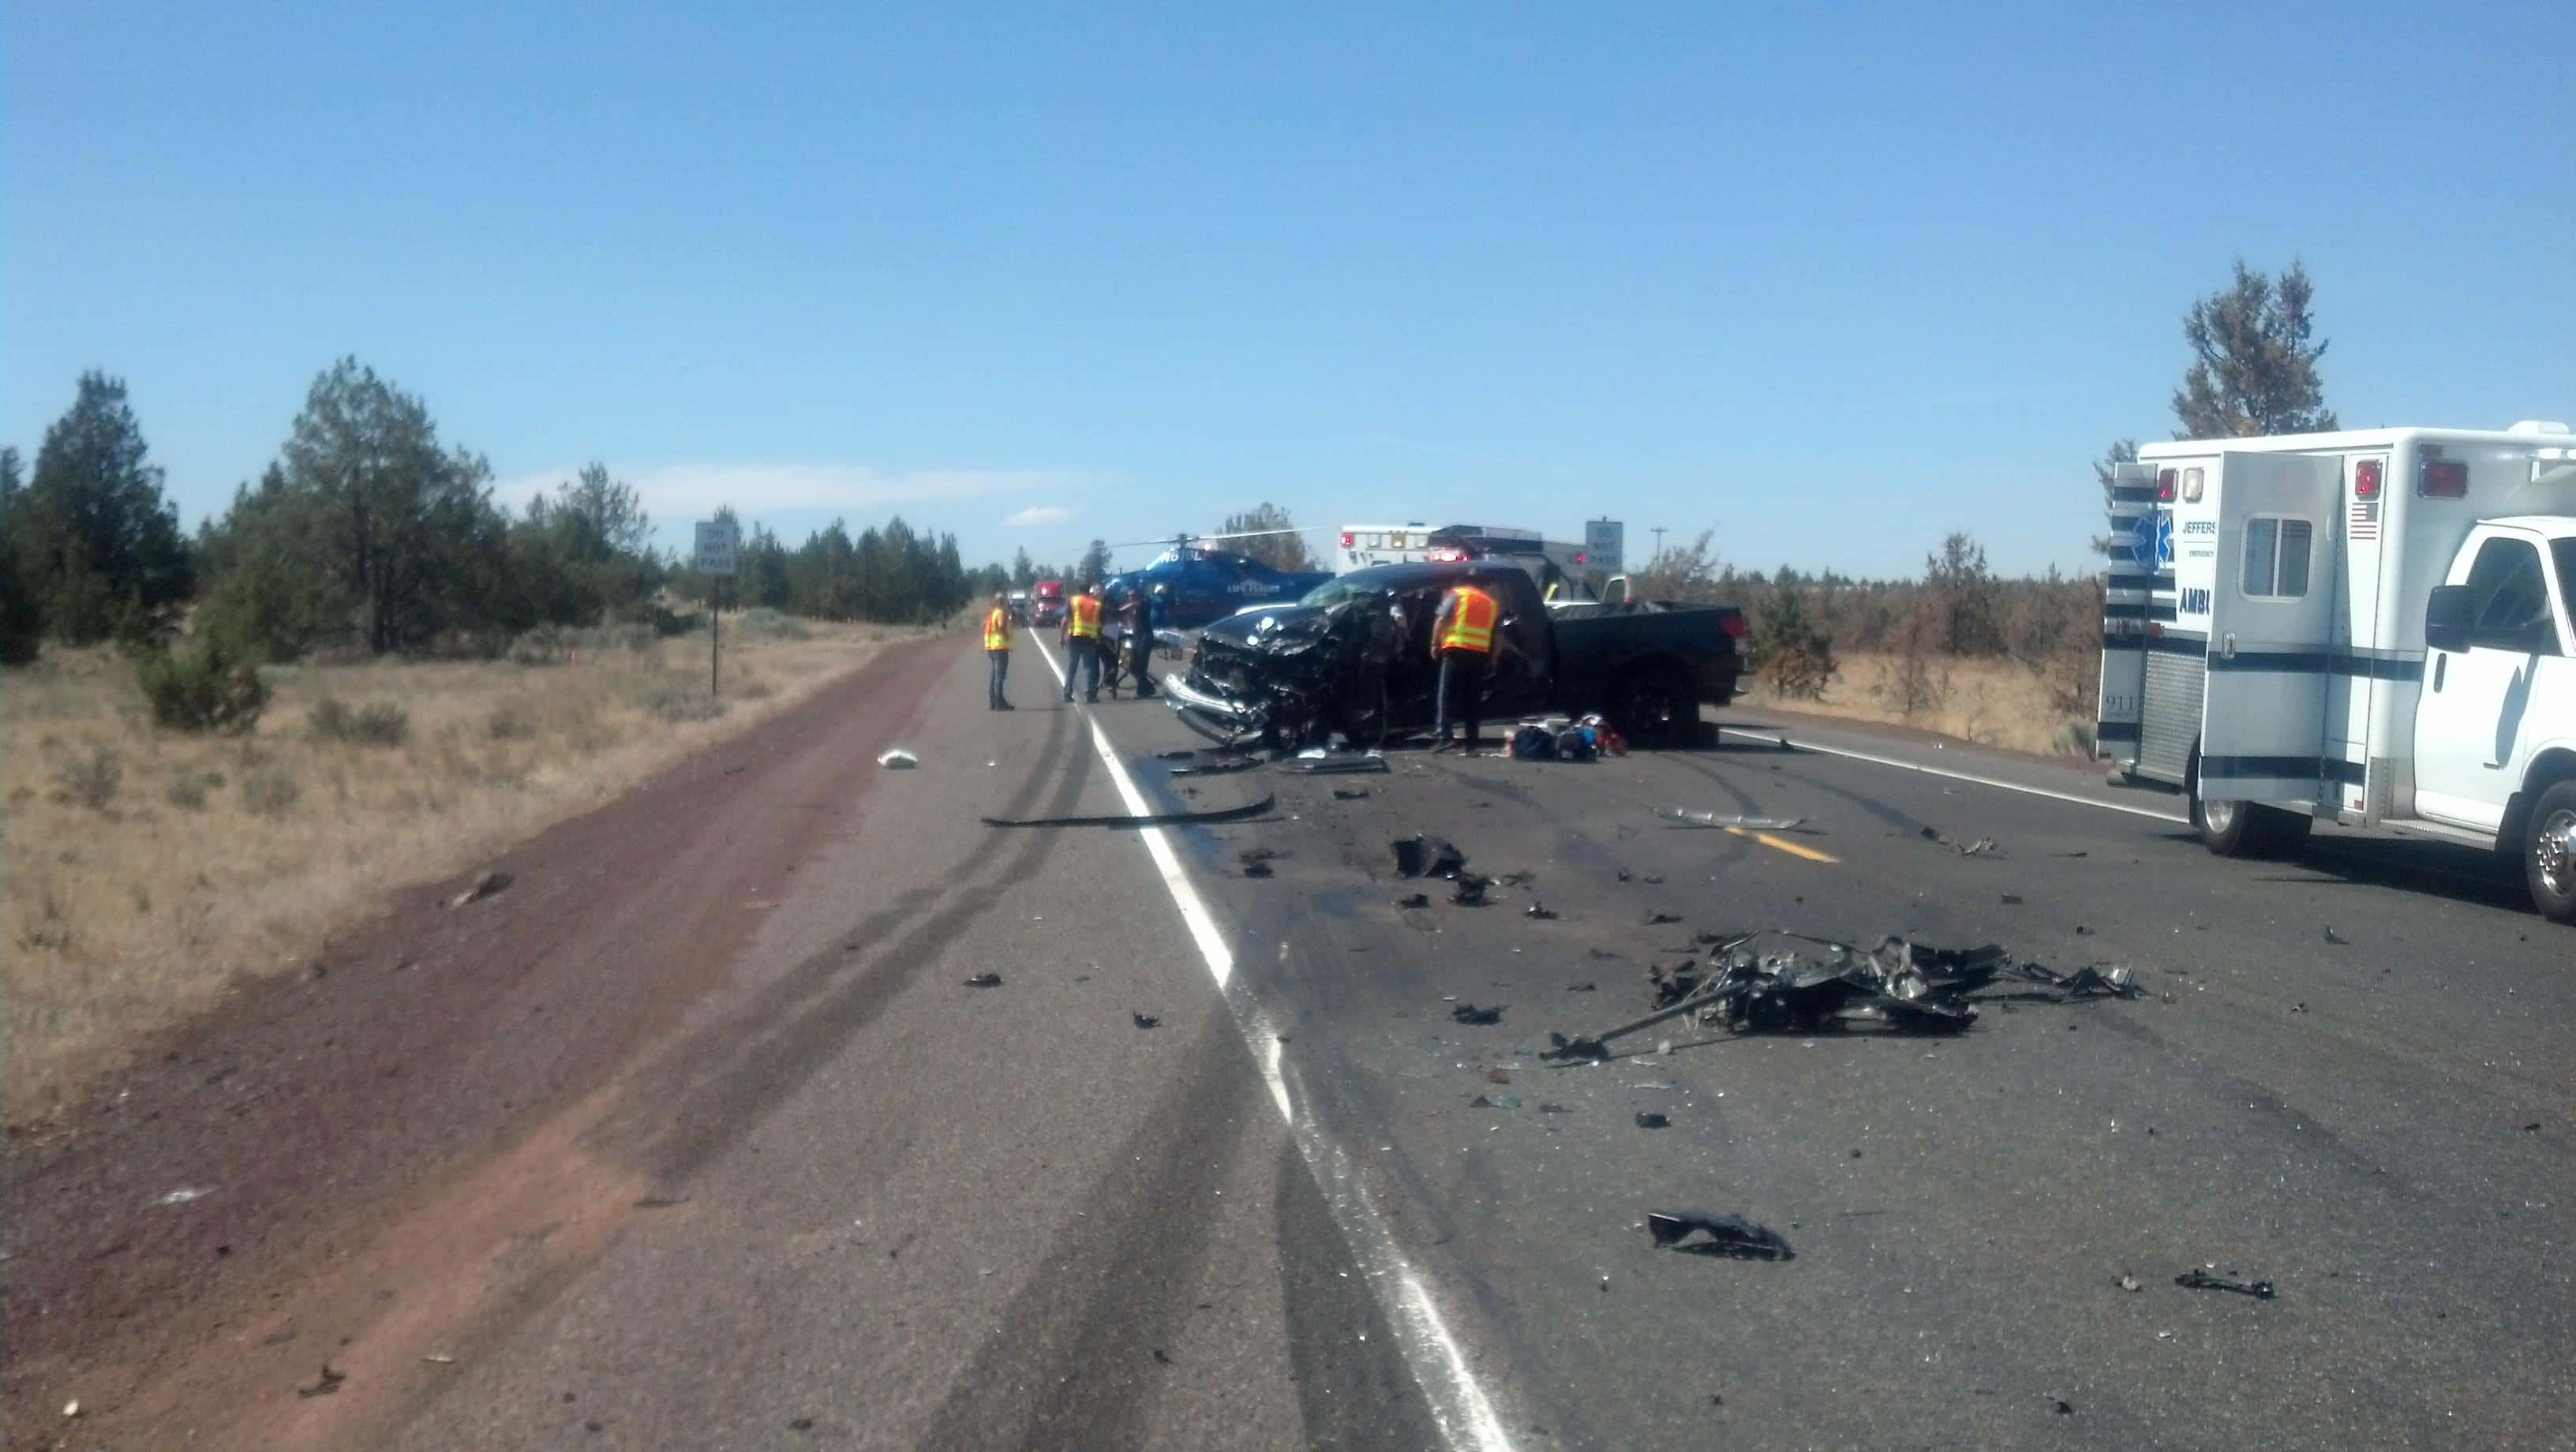 Man Cited In Serious Injury Crash In Wasco County